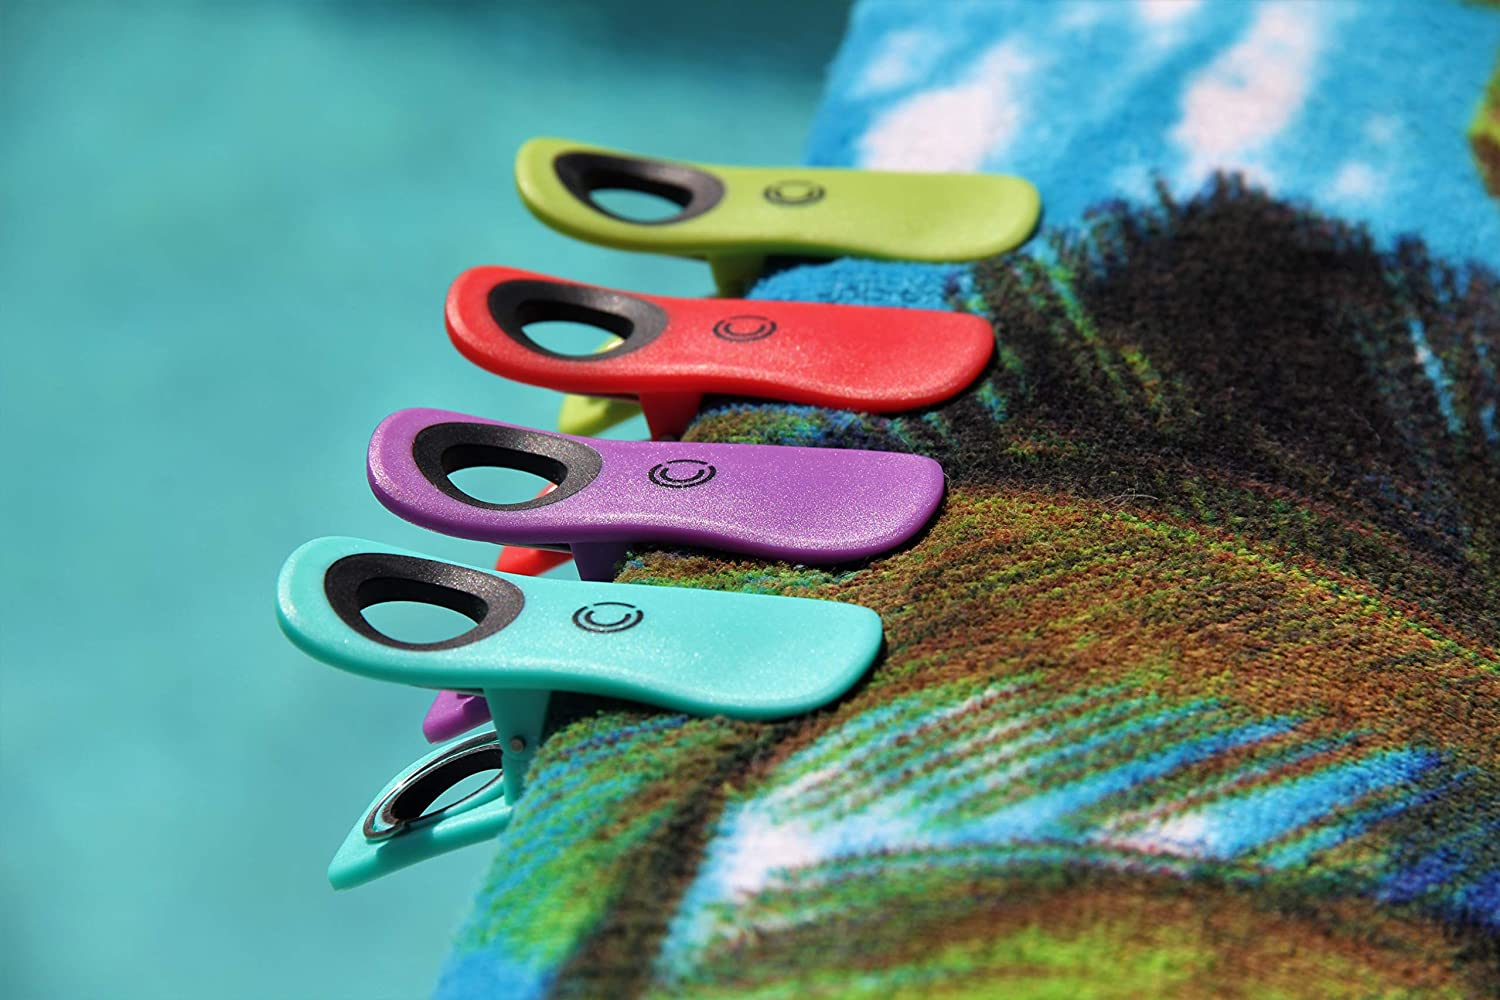 """Beach Towel Clips for Pool Chairs Pink 3/"""" No Rust Stainless Steel Premium Durability and Unmatched Quality Keeps Towel from Blowing Away Beach Chairs and Cruise Ship are Vacation Essentials"""